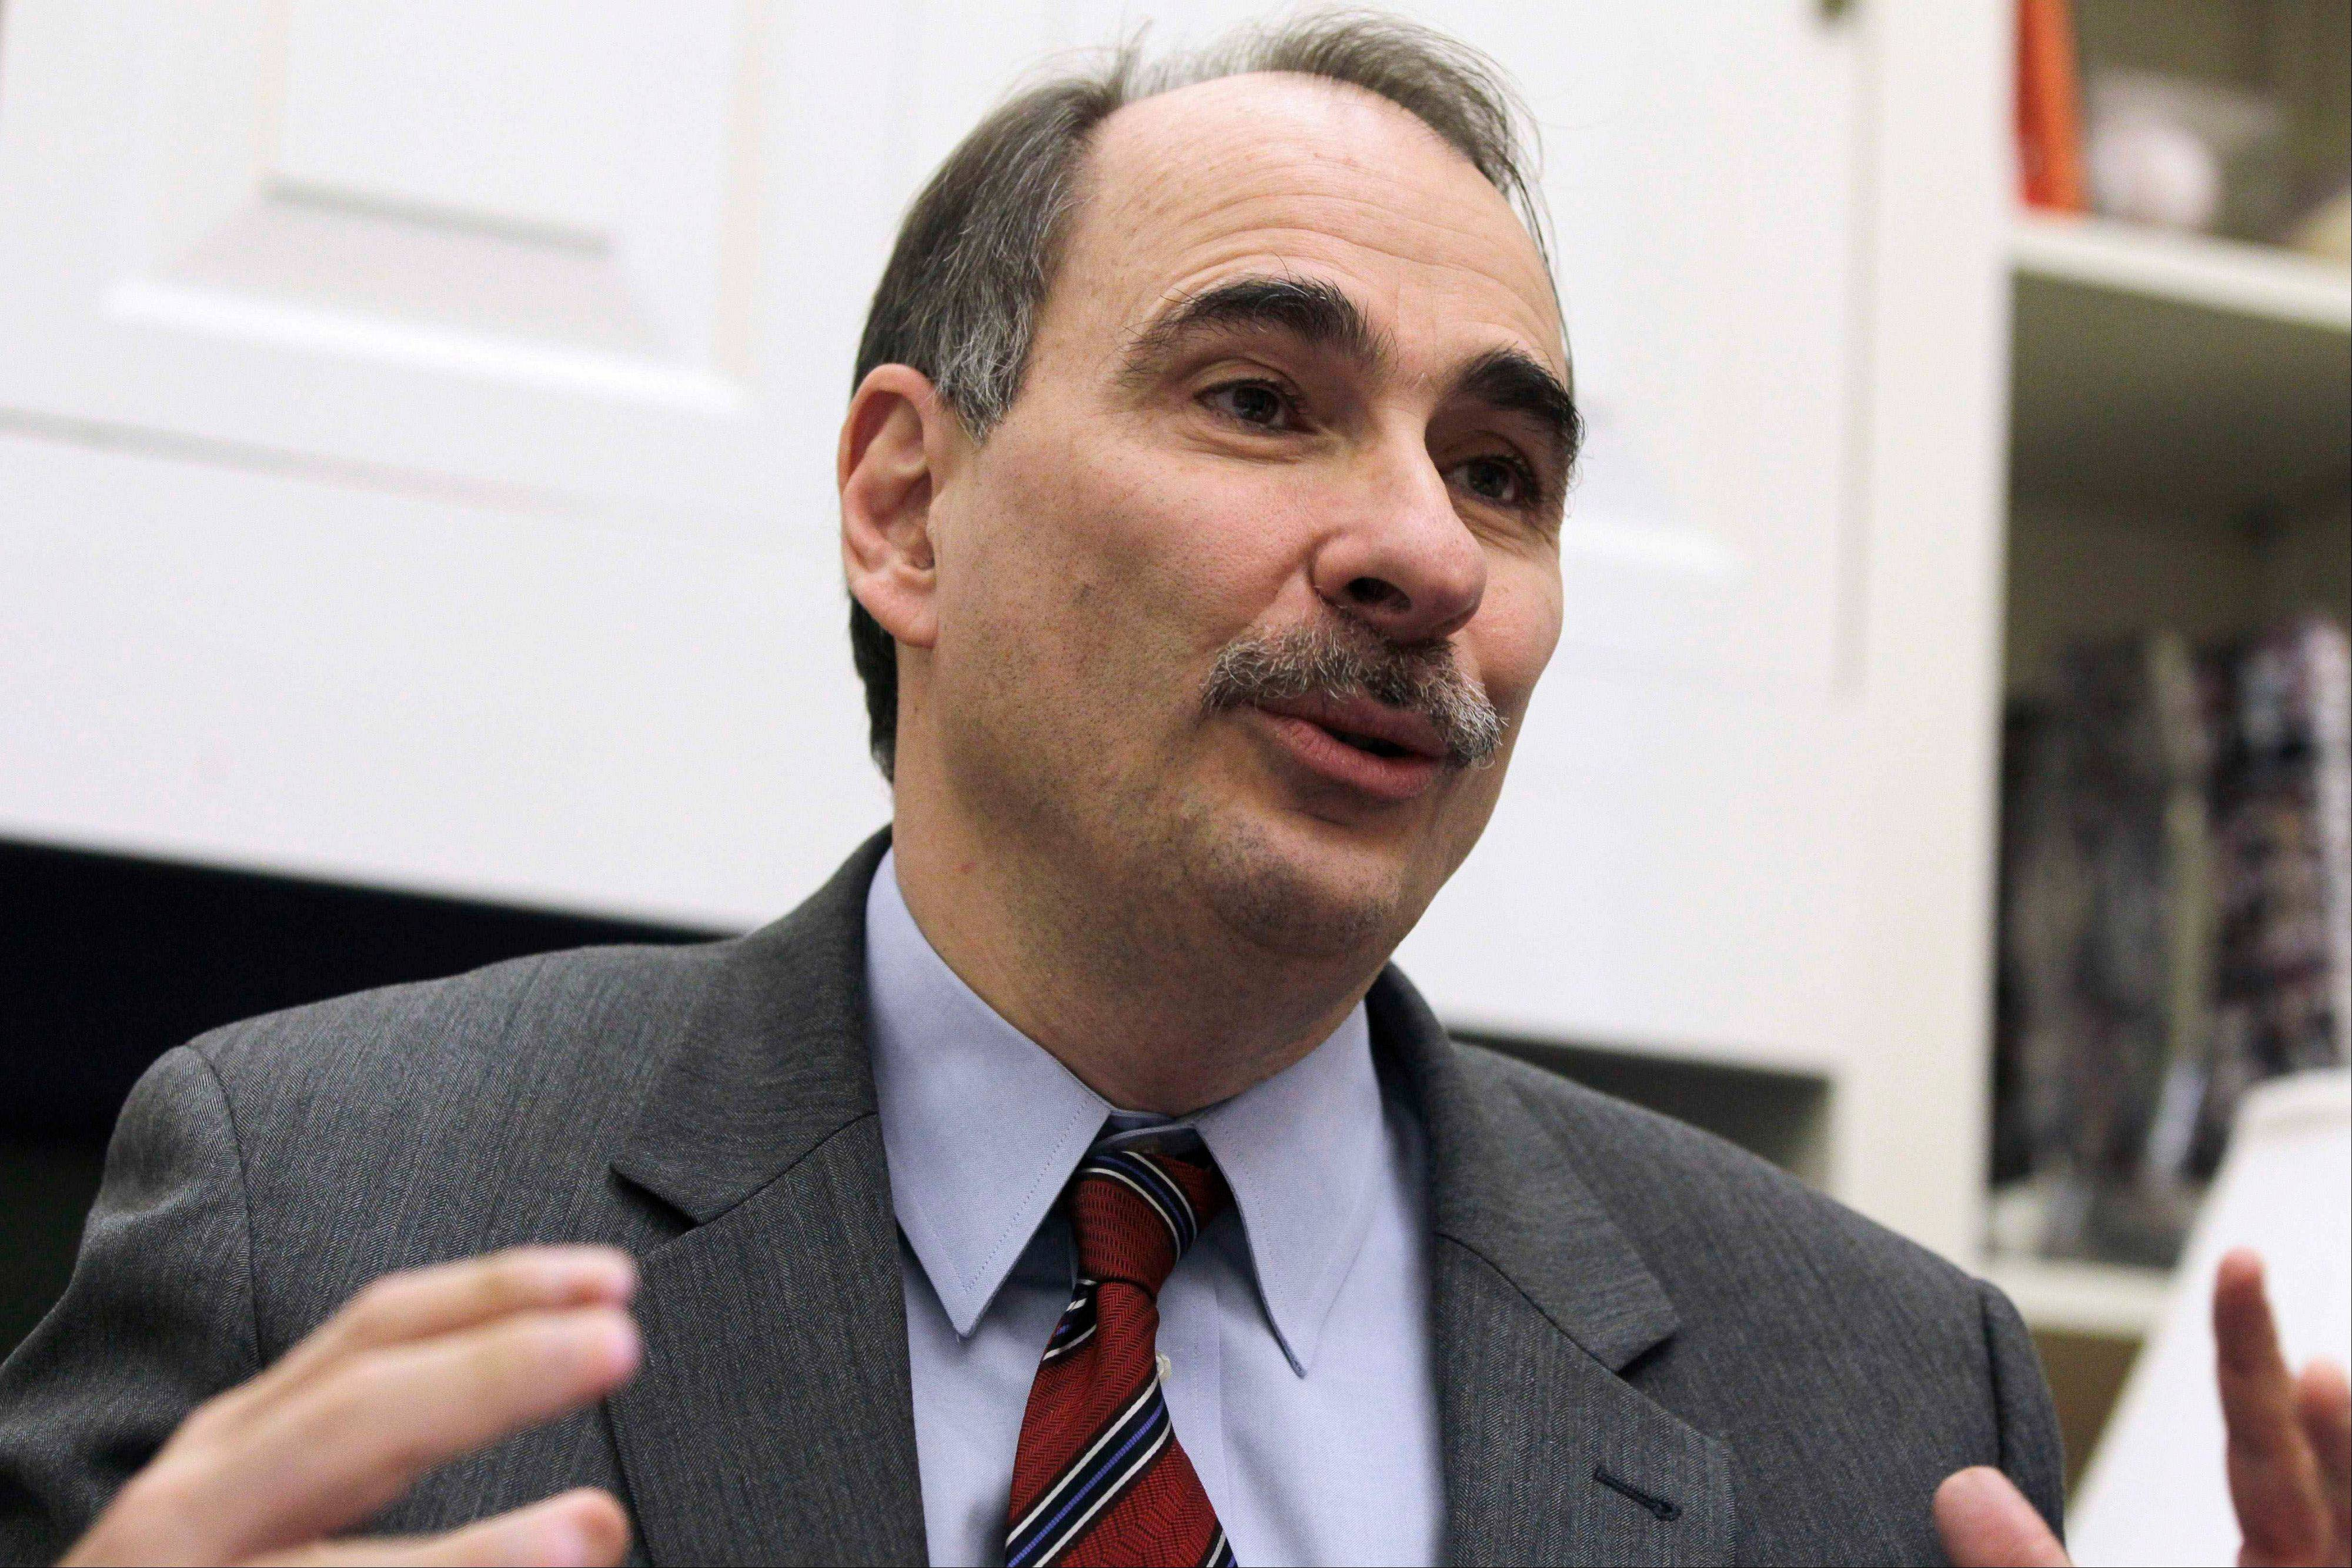 This Jan. 28, 2011, file photo shows David Axelrod, outgoing senior White House adviser to President Barack Obama, during an interview with the Associated Press at the White House. Axelrod, who is a former political reporter for The Chicago Tribune, has known the president since the early 1990s and was a driving force behind Obama's message of change during the 2008 campaign. He is a calming influence on the Obama 2012 campaign team and has helped focus on middle-class voters.